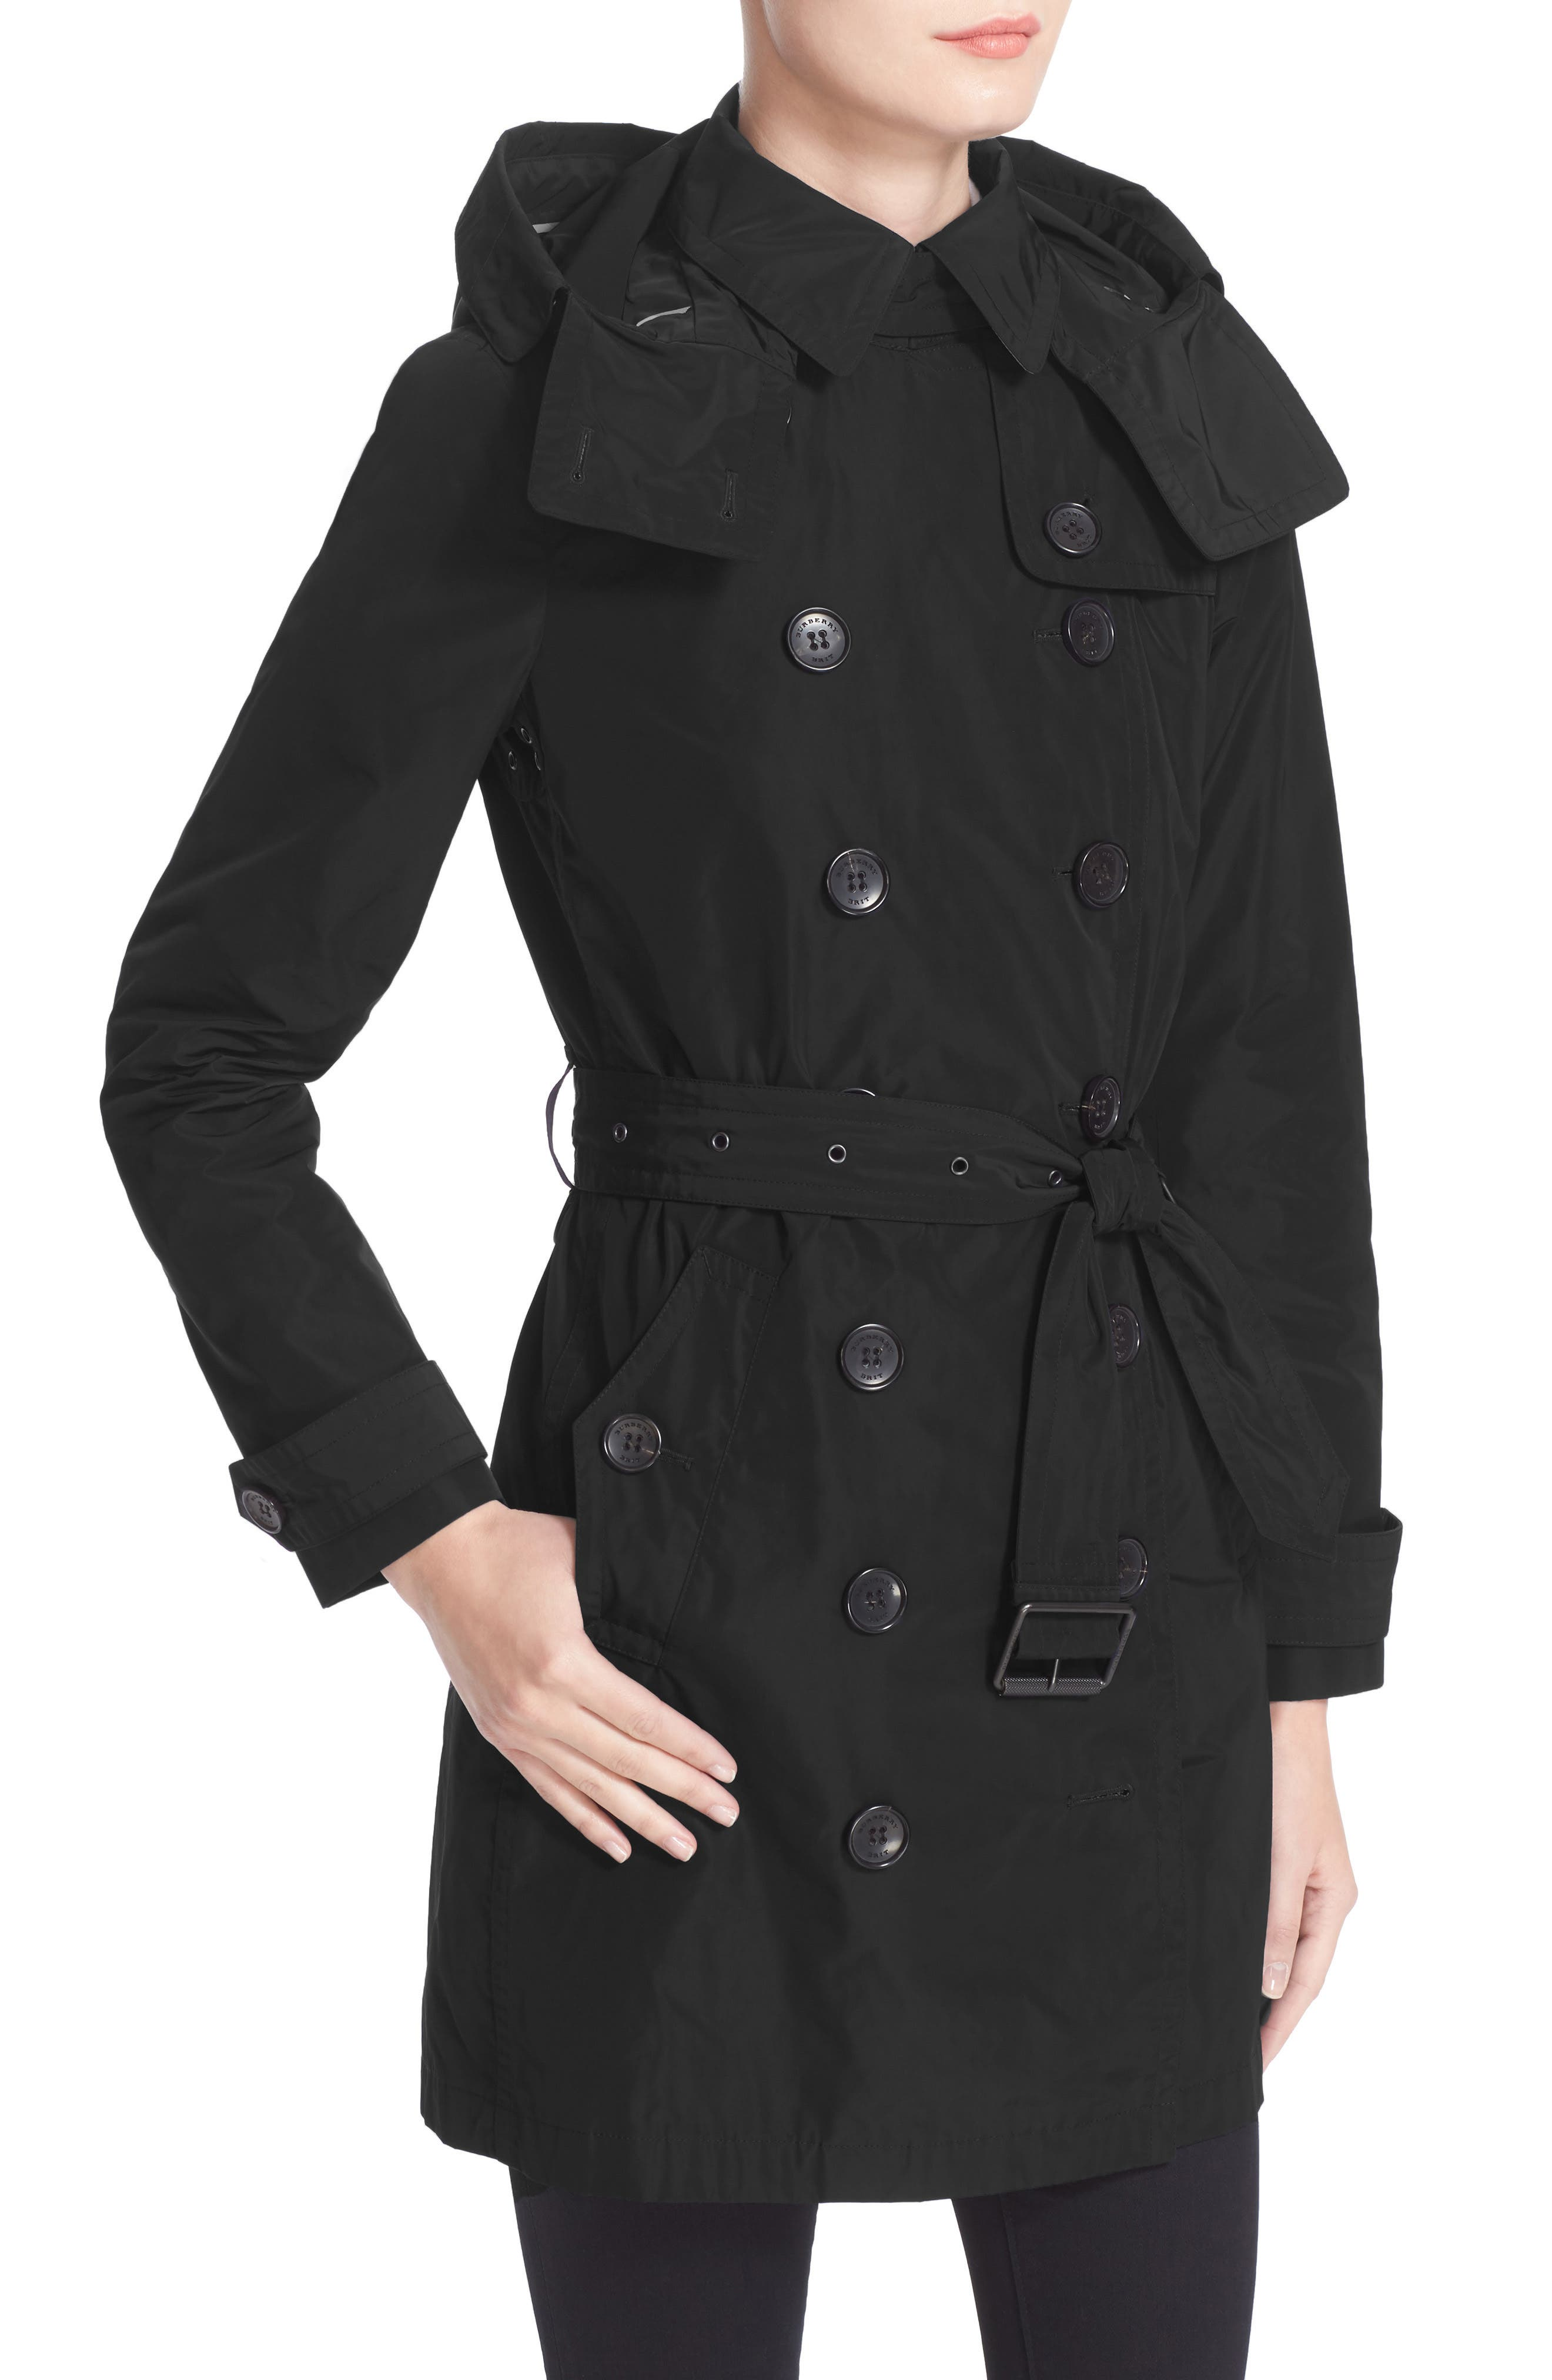 BURBERRY, Balmoral Packable Trench, Alternate thumbnail 6, color, 001